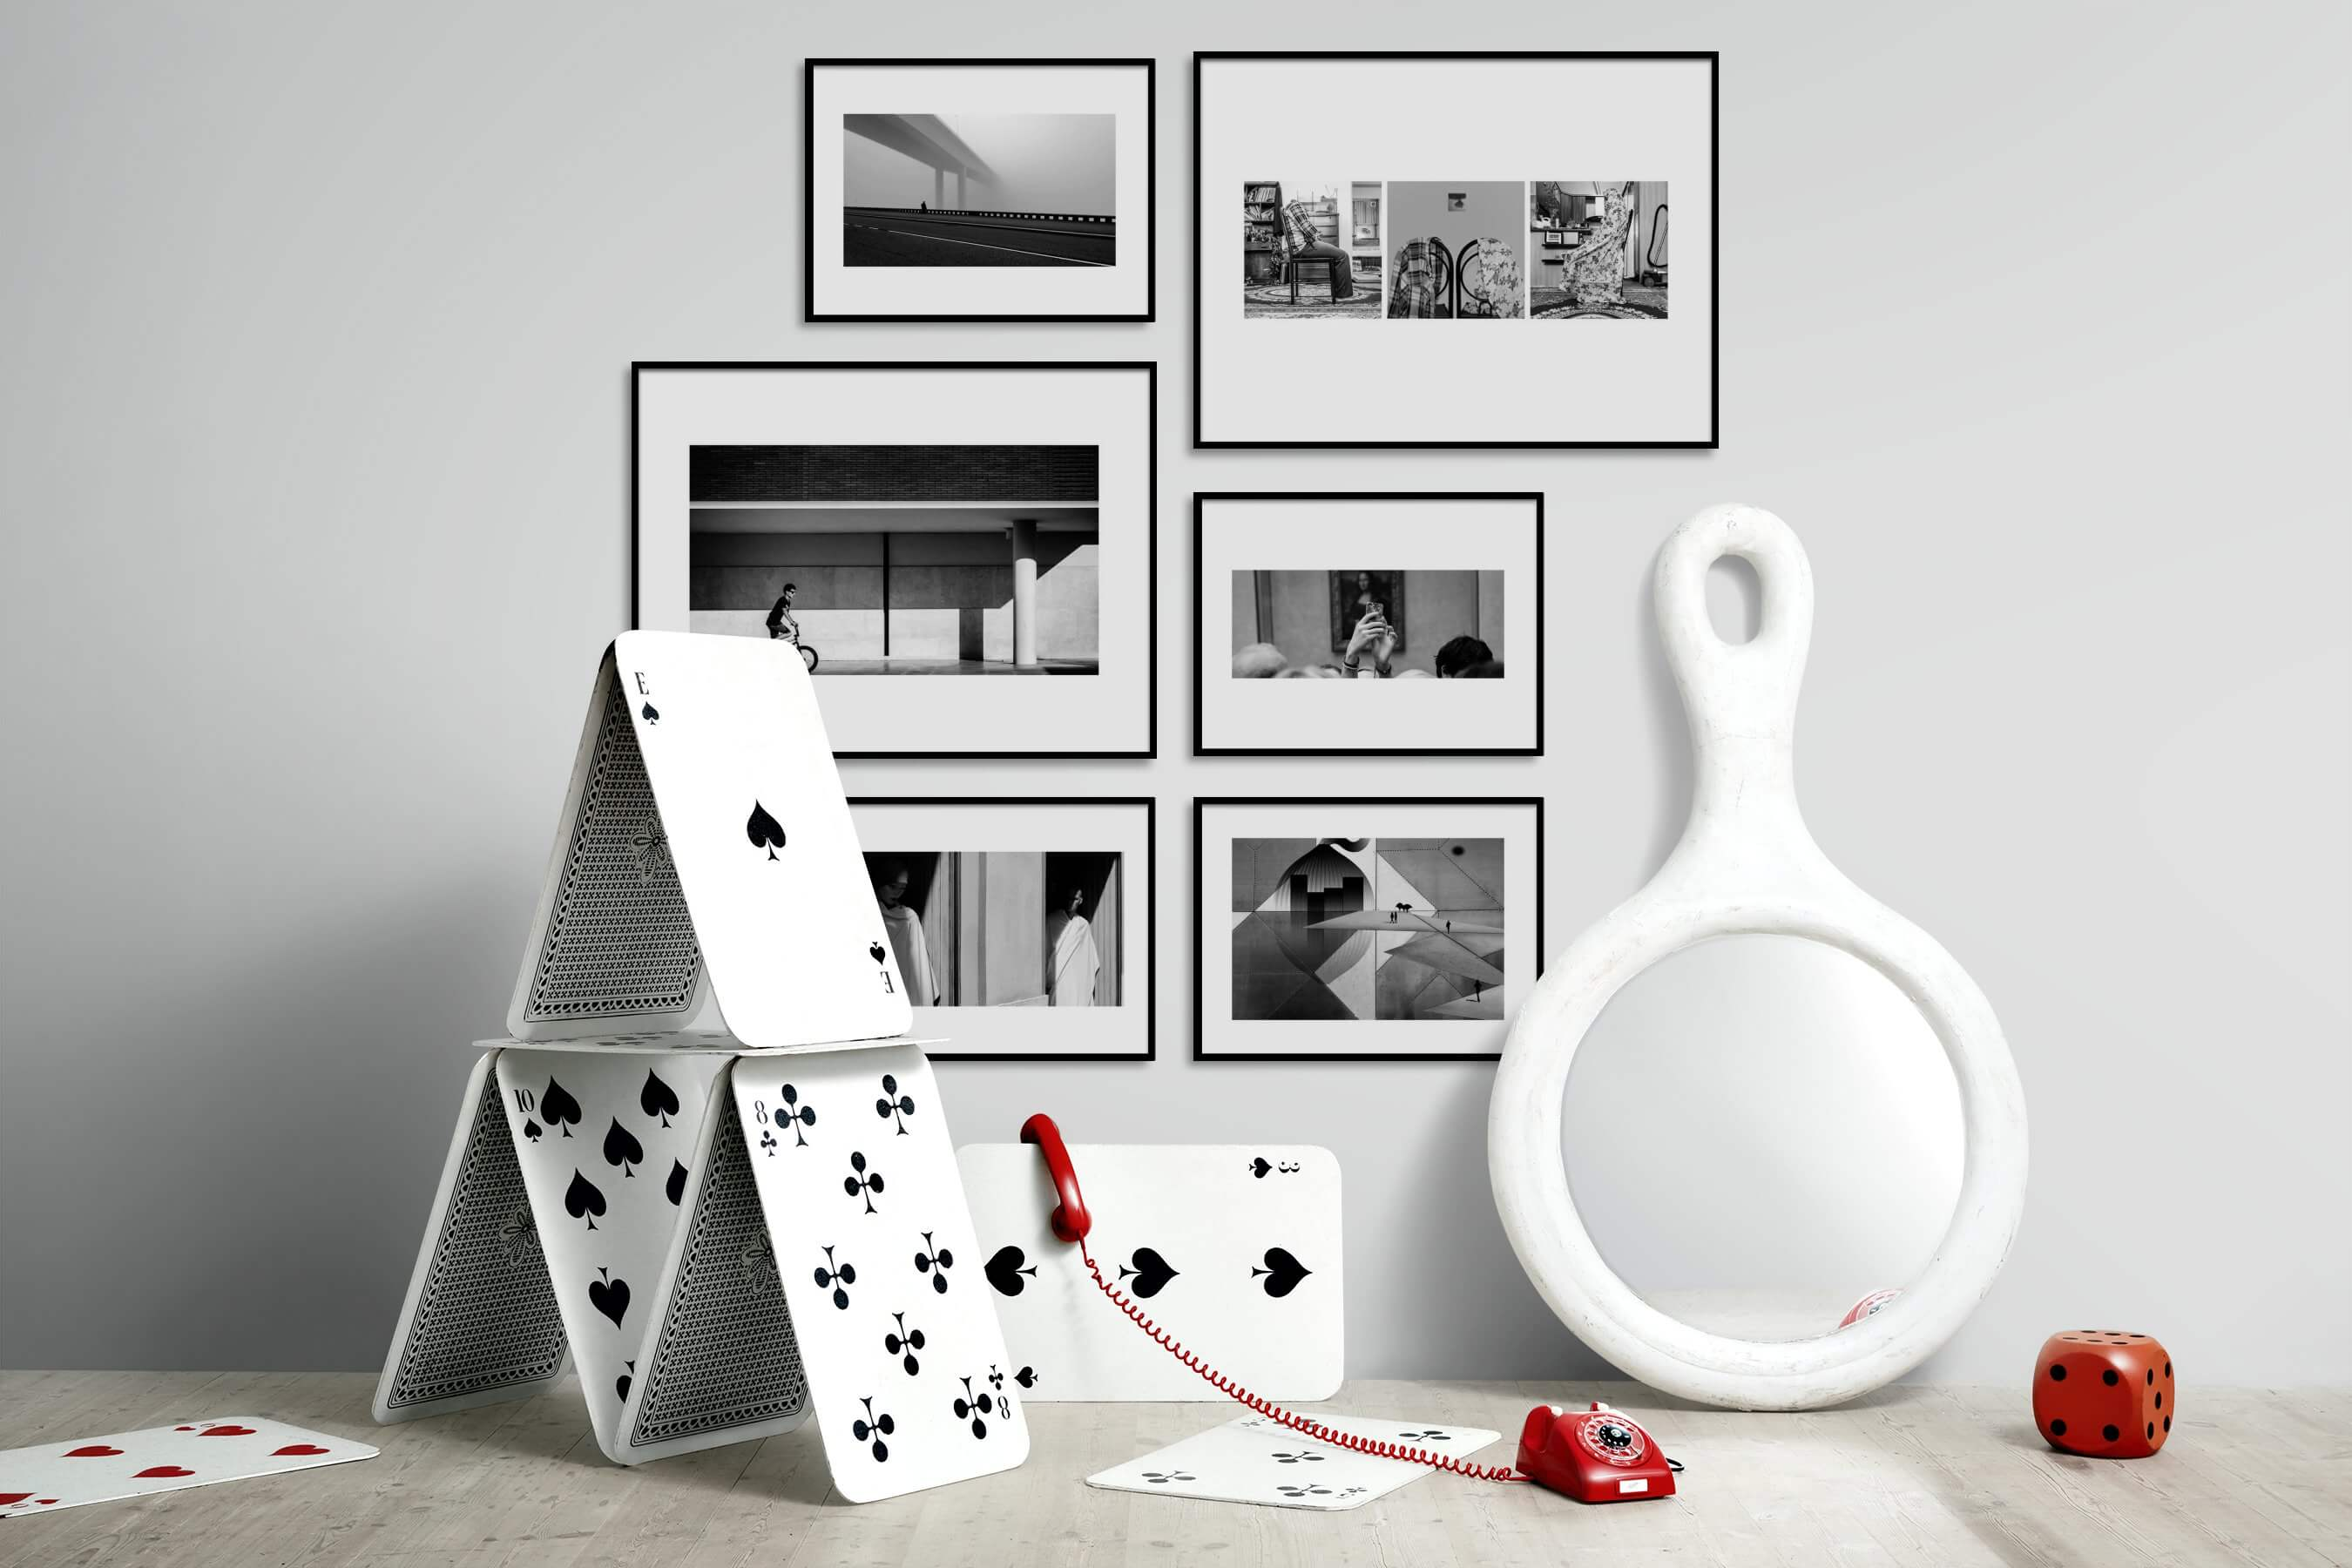 Gallery wall idea with six framed pictures arranged on a wall depicting Black & White, For the Minimalist, Artsy, For the Moderate, and City Life